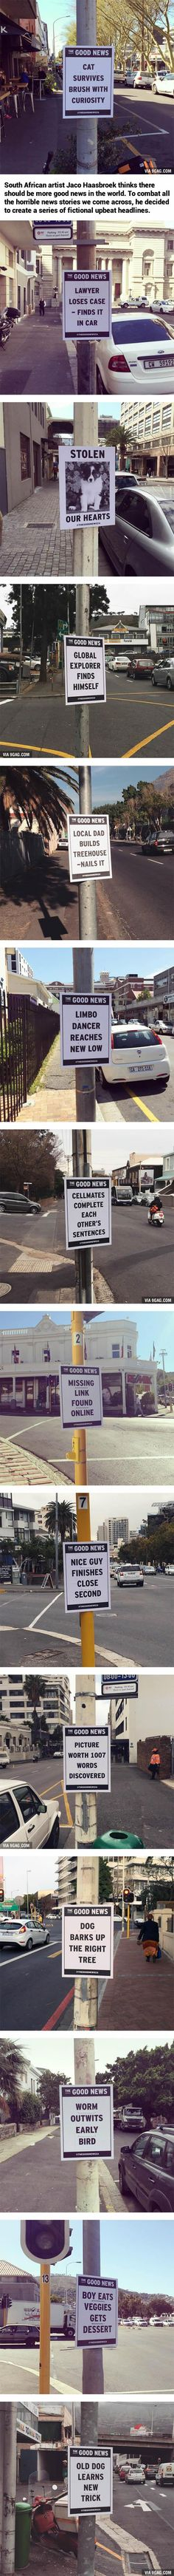 """Artist Delivers """"The Good News"""" With Upbeat Street Flyers - www.viralpx.com"""